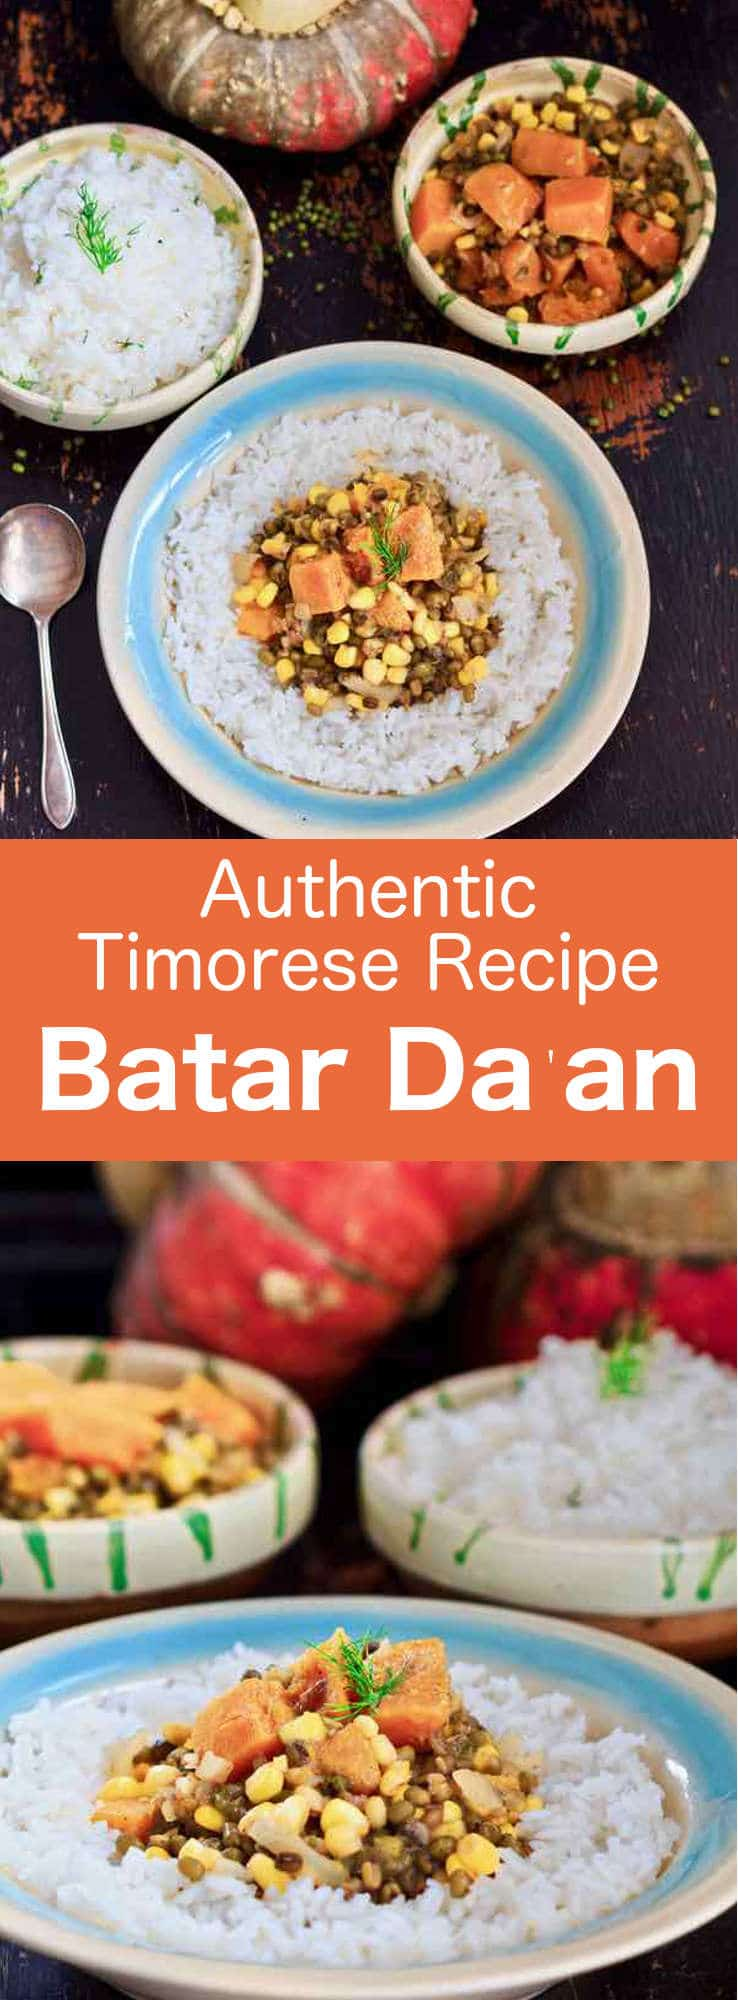 Batar Da'an (boiled corn in Tetum) is a delicious vegan and gluten-free dish prepared with corn and mung beans from East Timor. #Timorese #EastTimor #TimoreseCuisine #vegan #vegetarian #glutenfree #WorldCuisine #196flavors